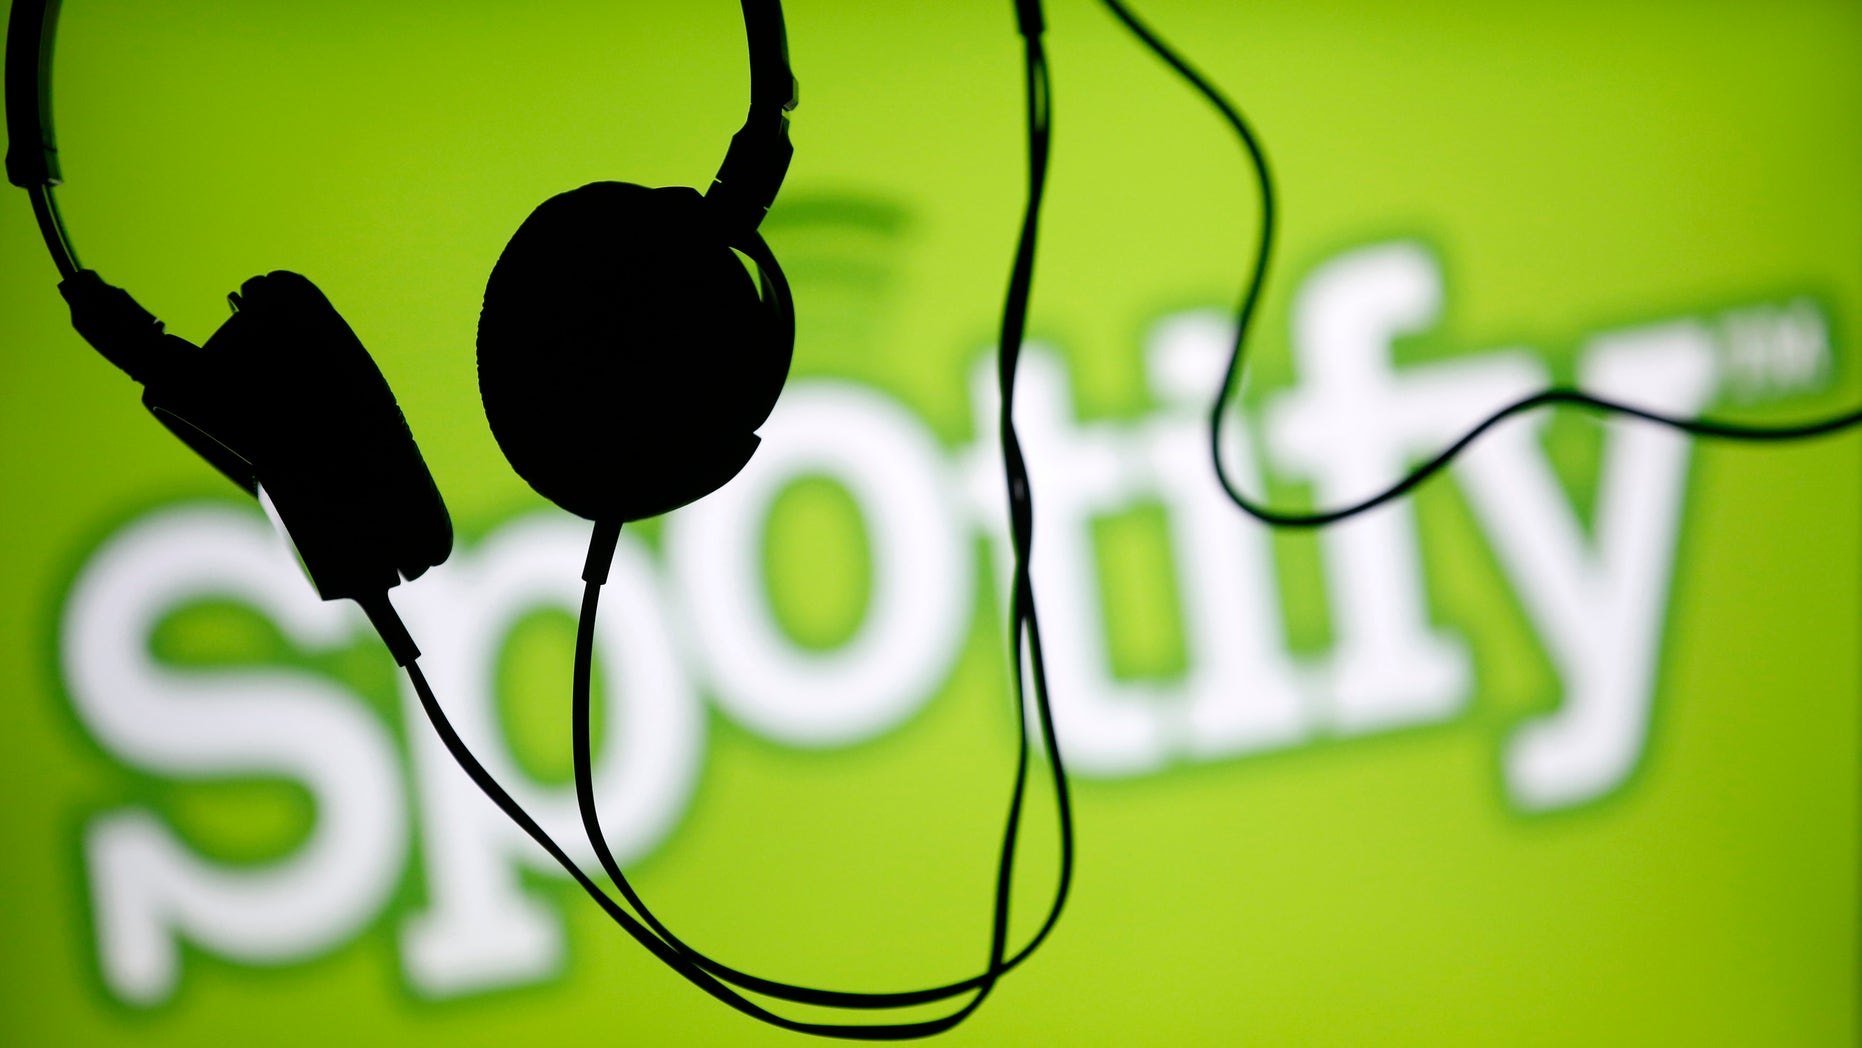 Headsets hang in front of a screen displaying a Spotify logo on it, in Zenica February 20, 2014. Online music streaming service Spotify is recruiting a U.S. financial reporting specialist, adding to speculation that the Swedish start-up is preparing for a share listing, which one banker said could value the firm at as much as $8 billion (4 billion pounds). REUTERS/Dado Ruvic (BOSNIA AND HERZEGOVINA - Tags: SCIENCE TECHNOLOGY BUSINESS SOCIETY) - RTX1975T